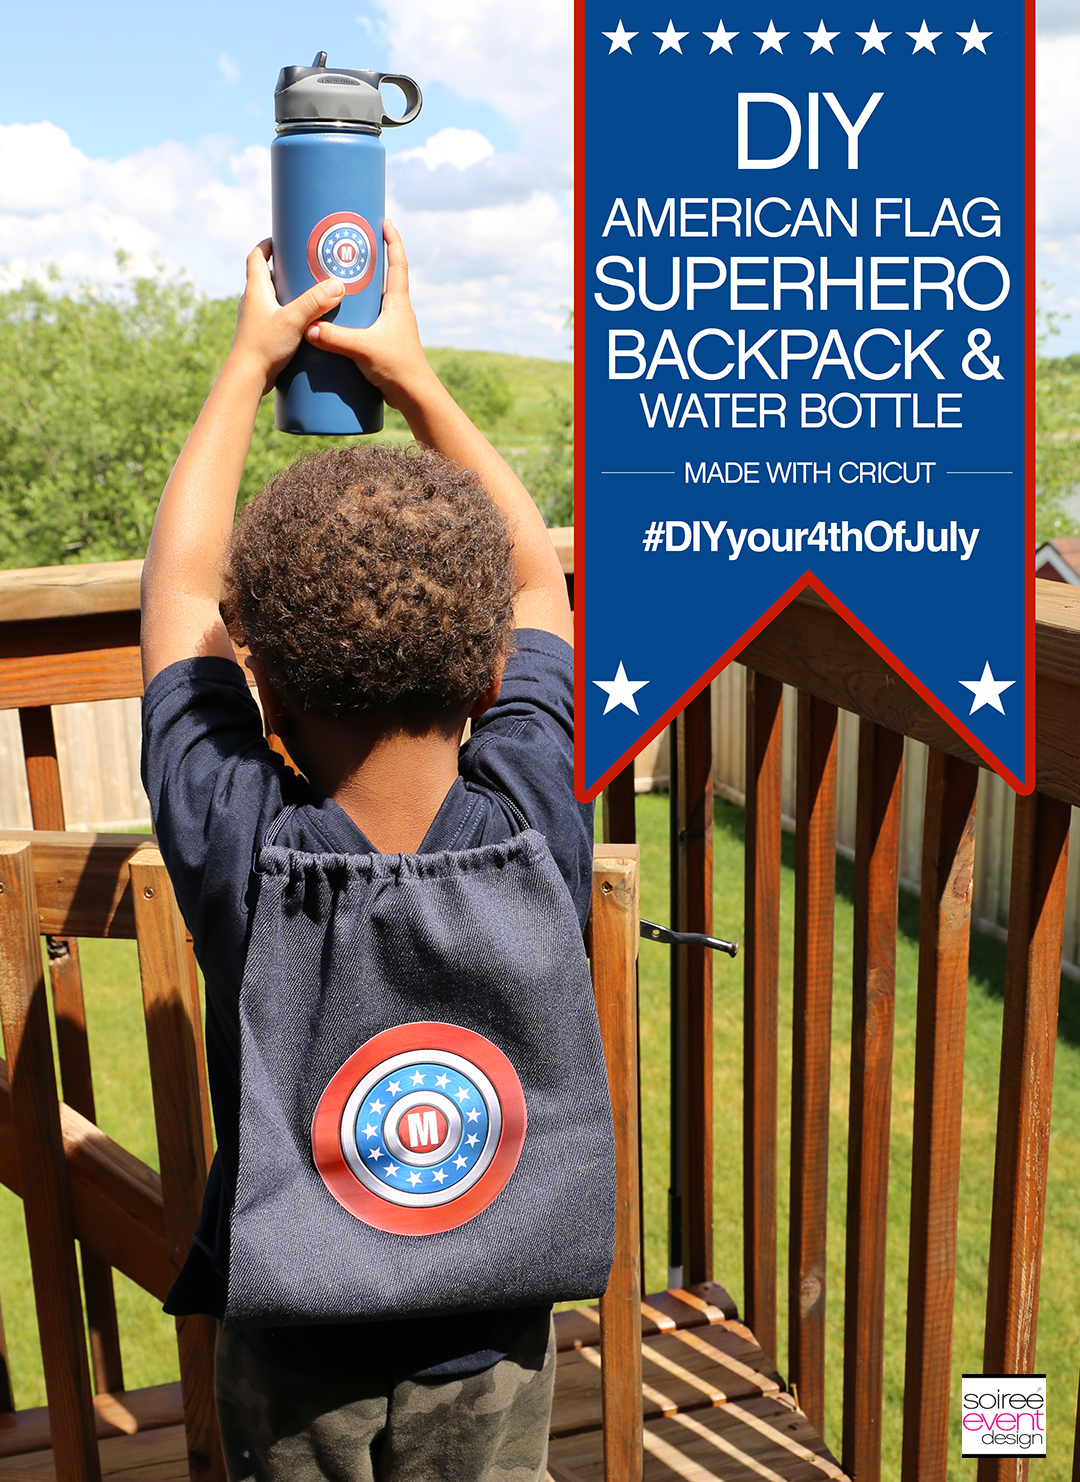 #DIYyour4thOfJuly_Superhero Flag Backpack and Water Bottle with Cricut